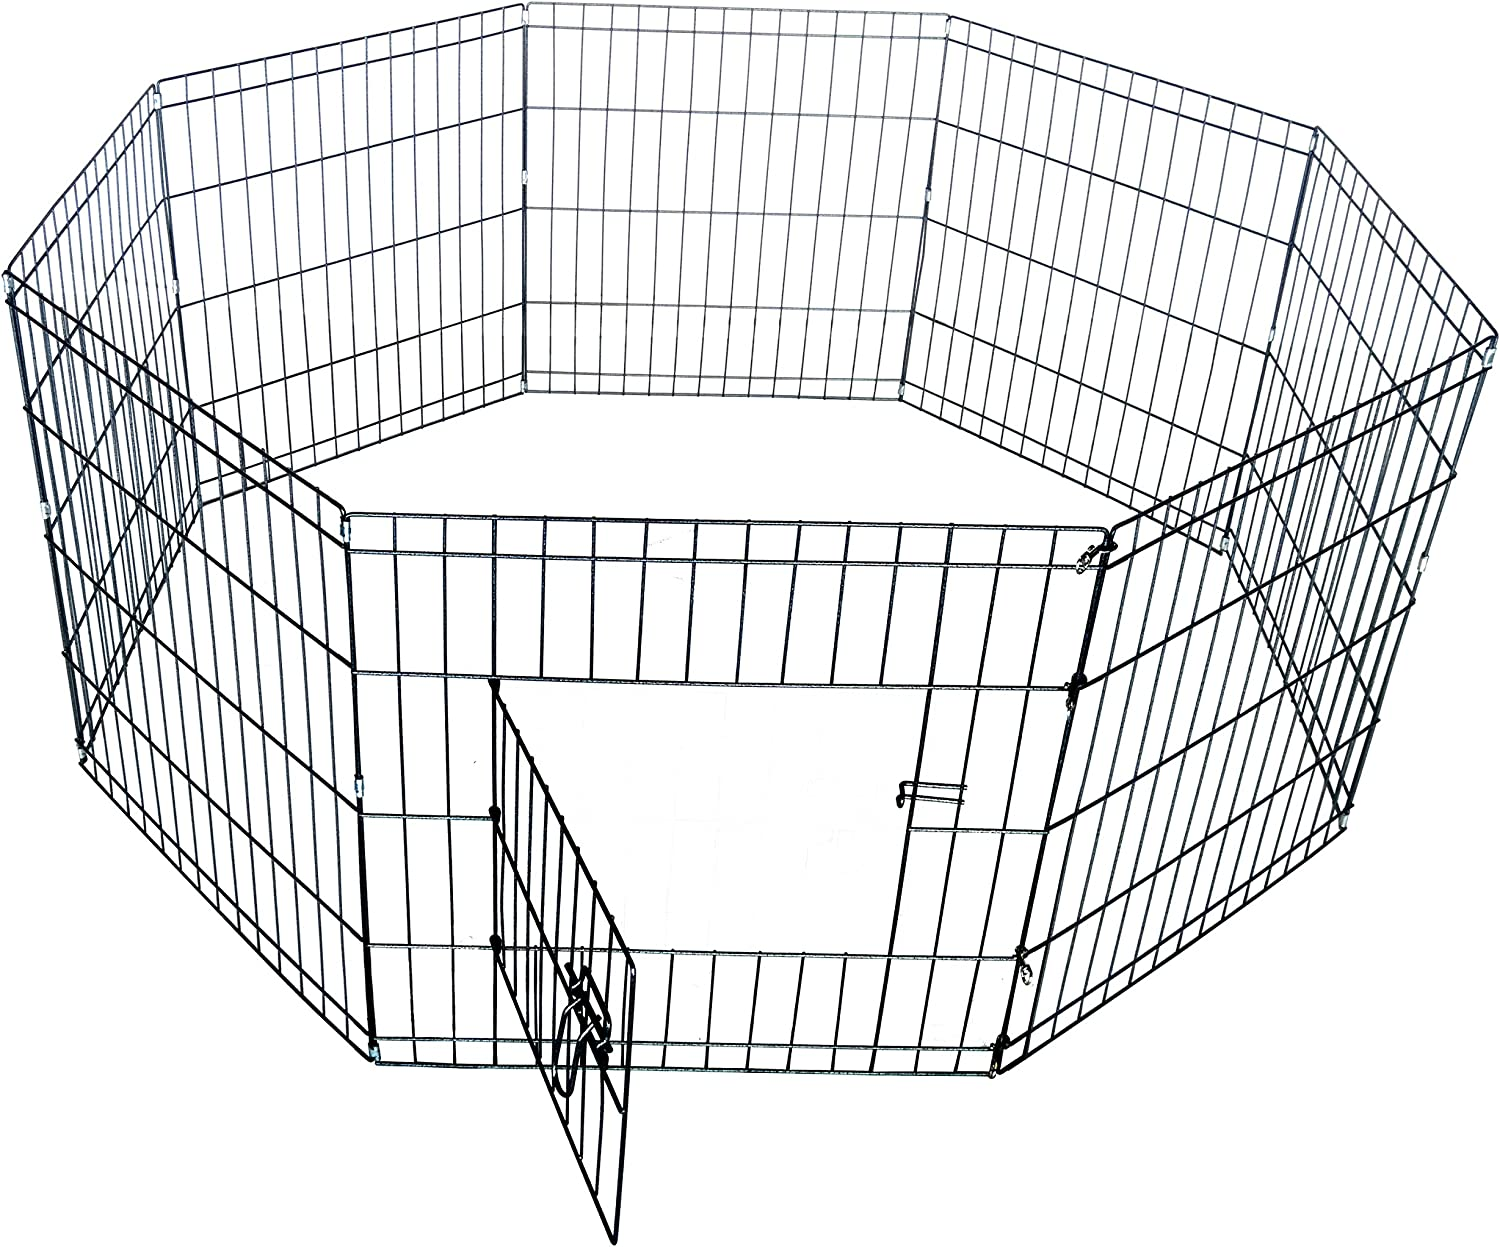 Neocraft 58030 Exercise Pen 30 Inch